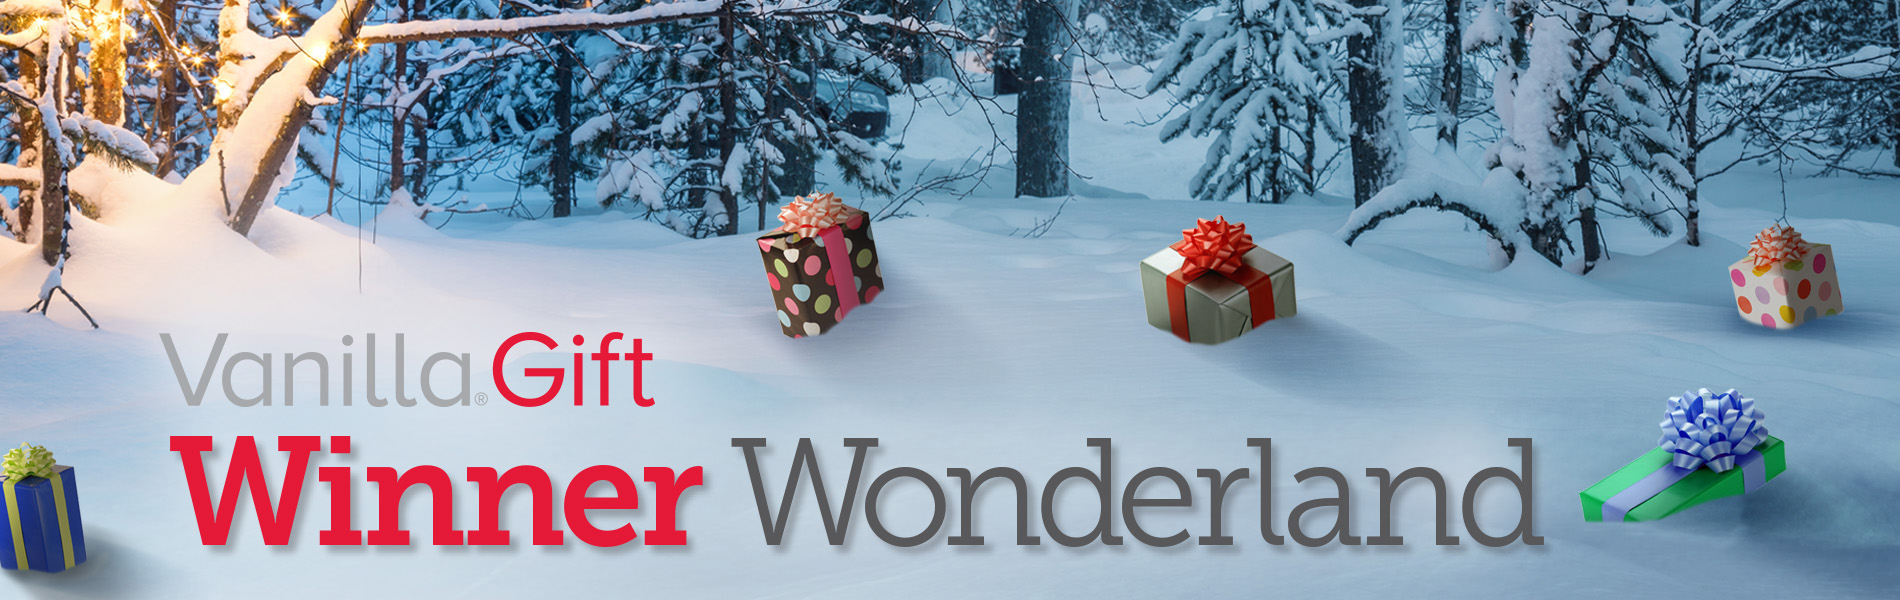 Vanilla® Launches Vanilla Gift Winner Wonderland Sweepstakes